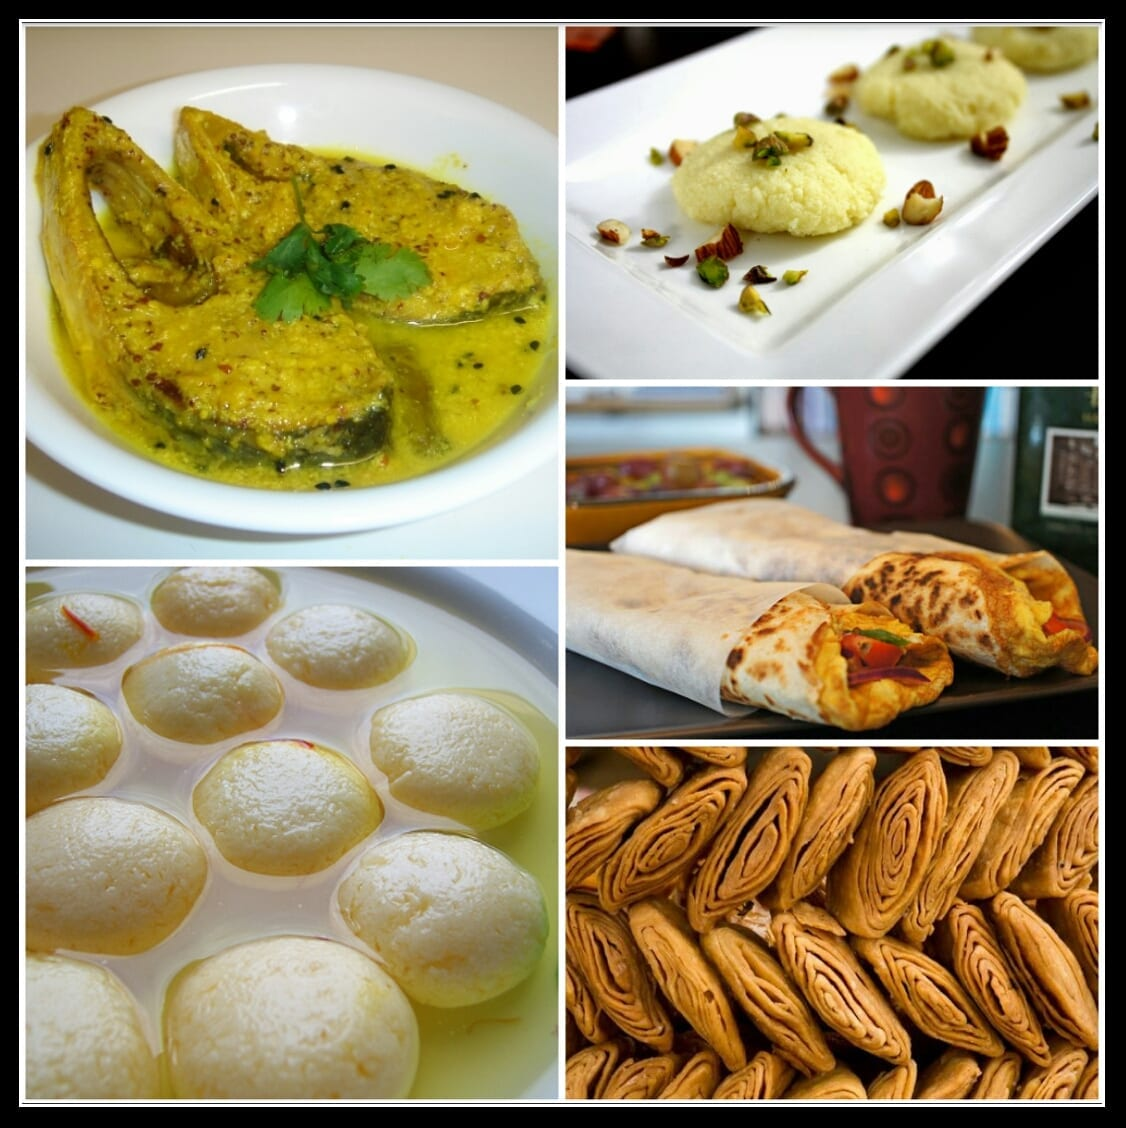 Eat-Bengali food delicacies of Ilish Macher Jhol (Top left), sweet dish Sandesh (Top Right), Egg roll (Middle Right), sweet dish Gaja (Bottom Left), Roshogulla (Bottom Left)